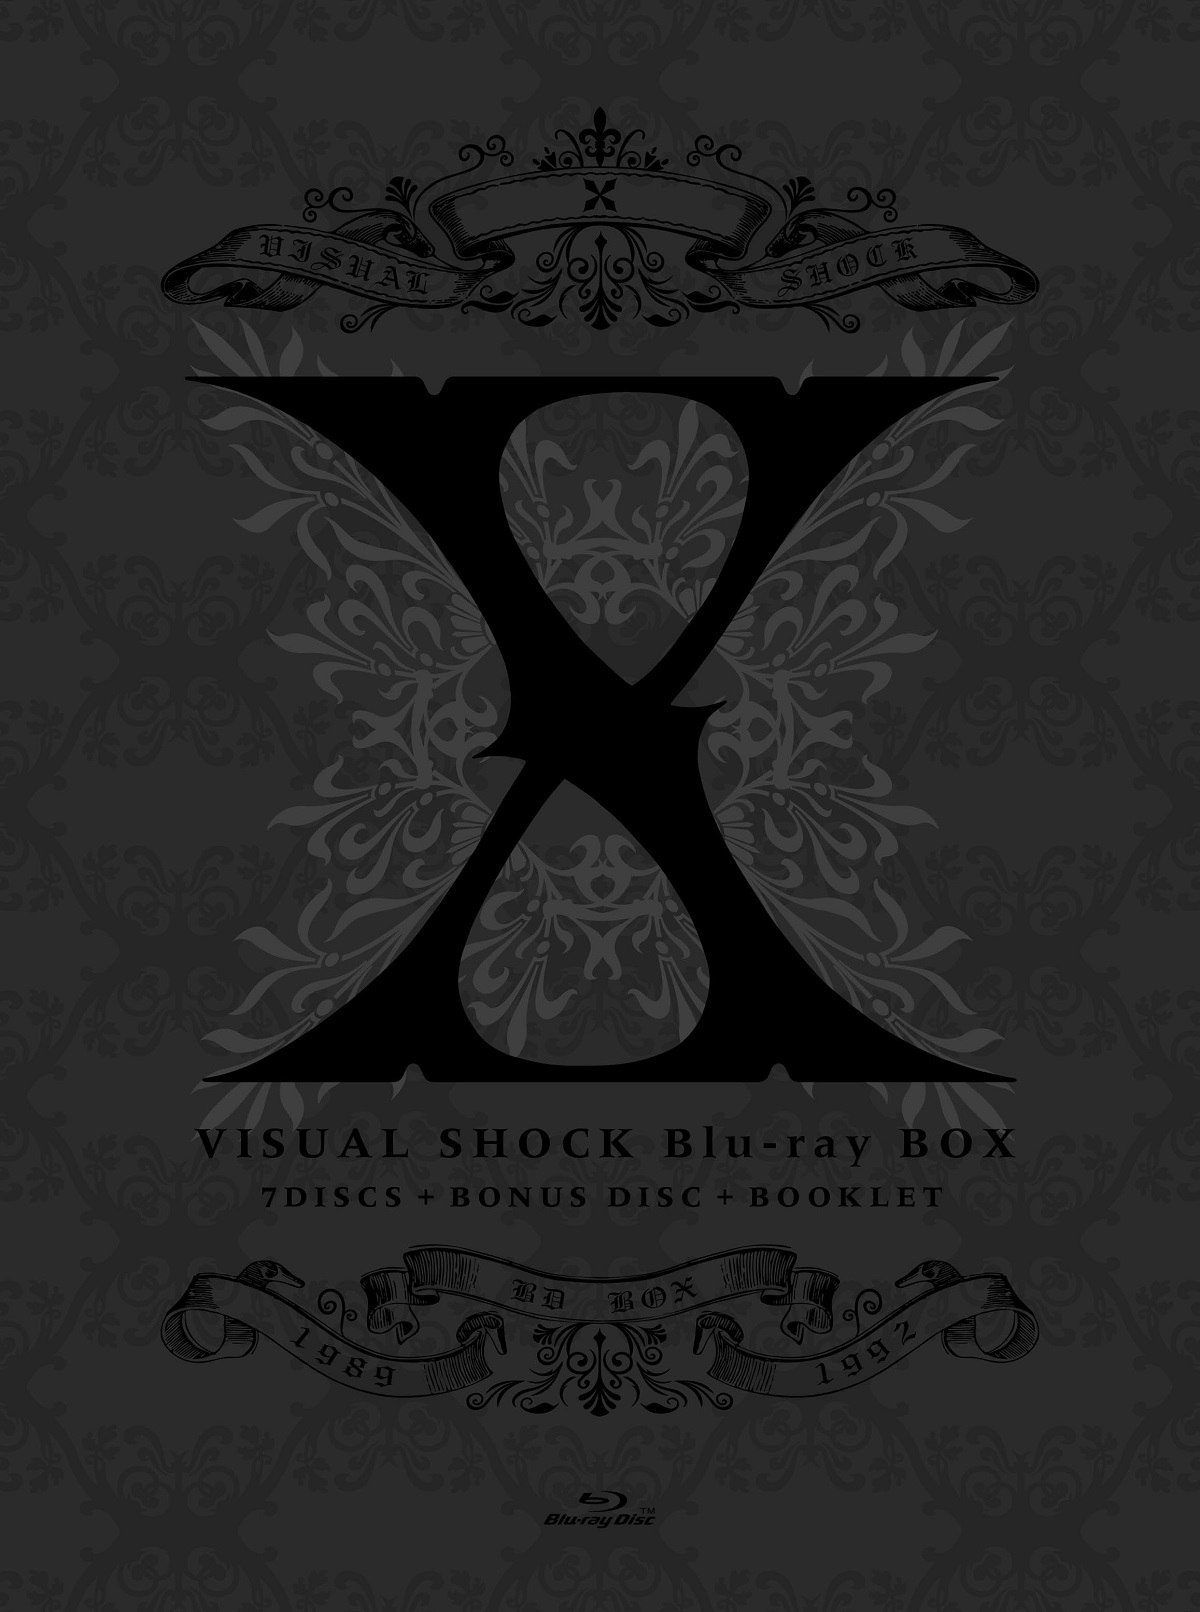 X『VISUAL SHOCK Blu-ray BOX 1989-1992』